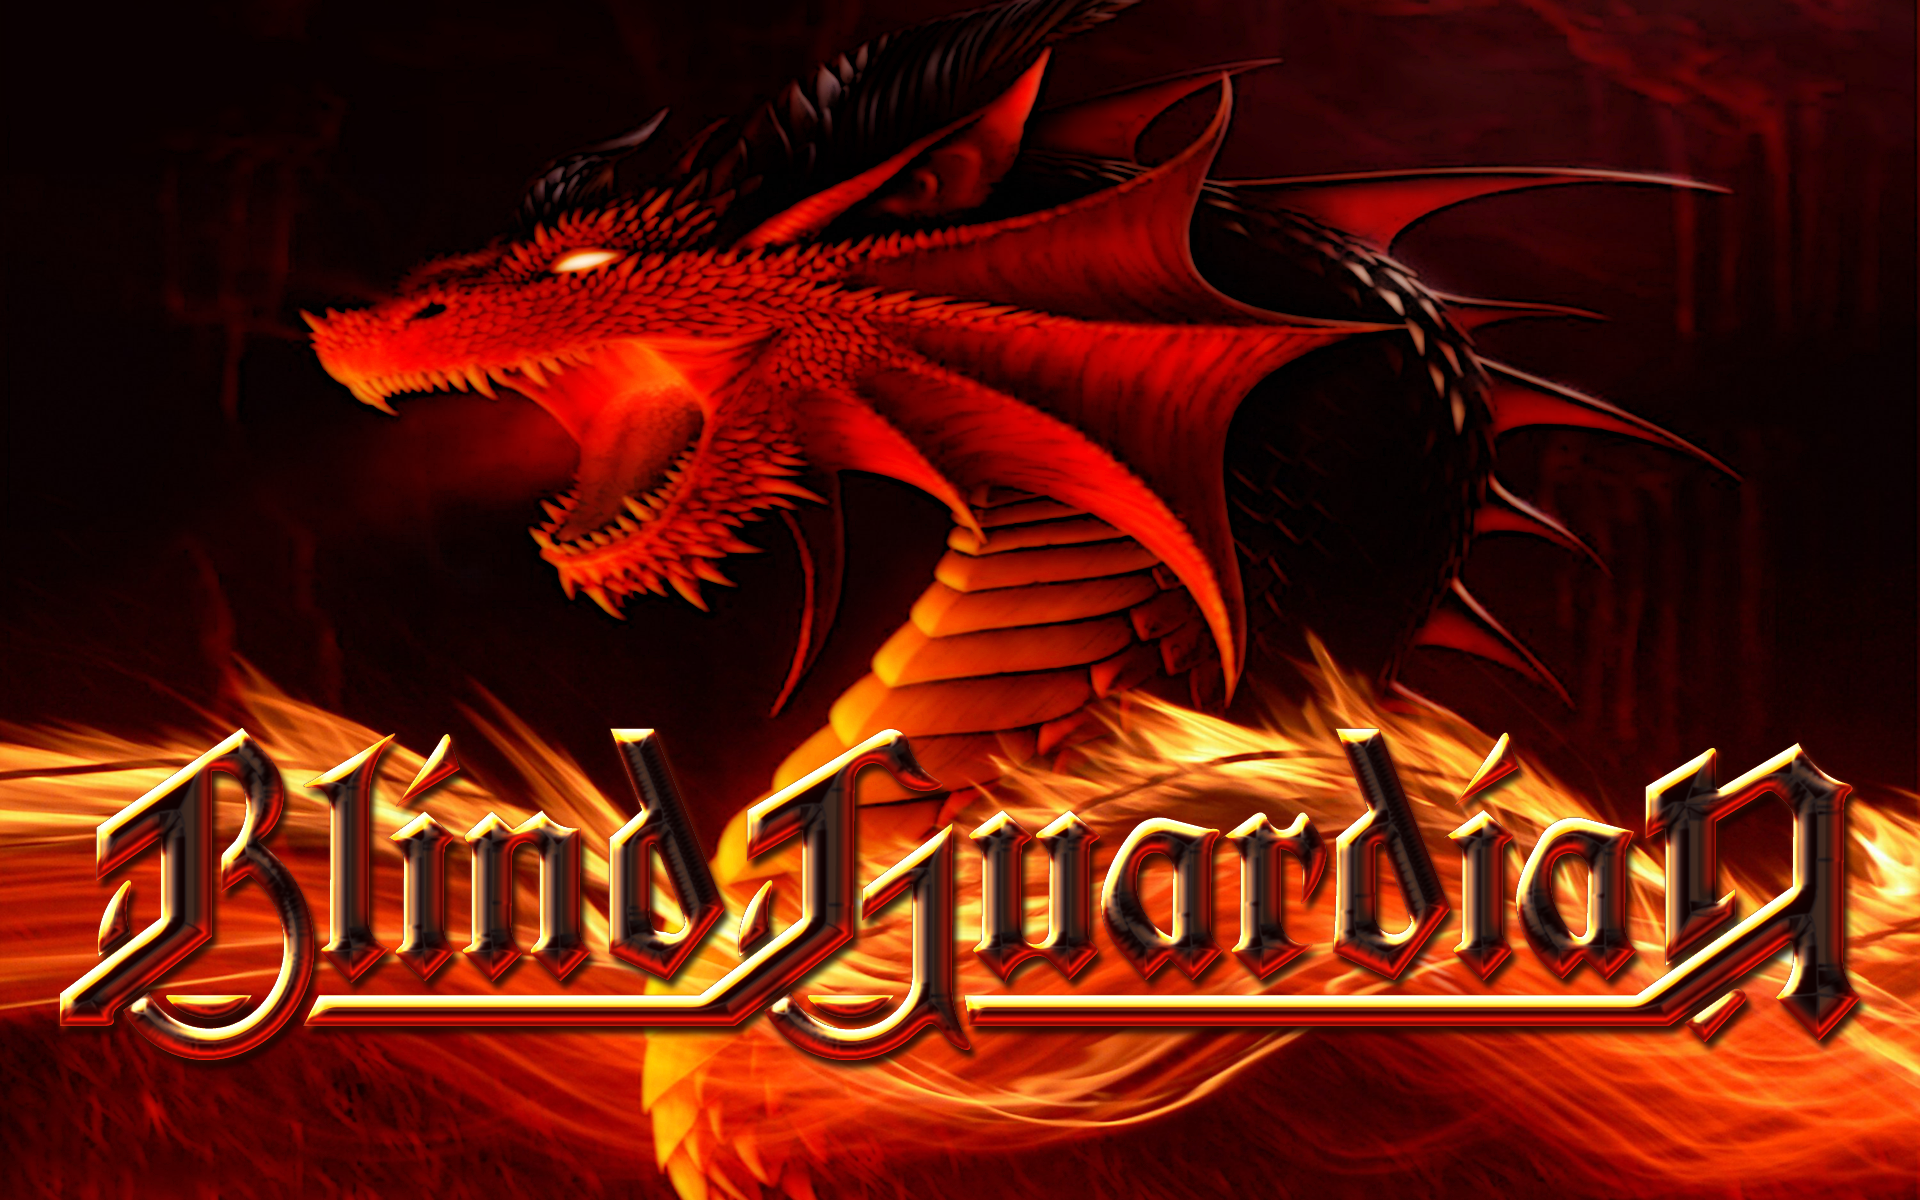 BLIND GUARDIAN Heavy Metal Album Cover Fantasy Dragon